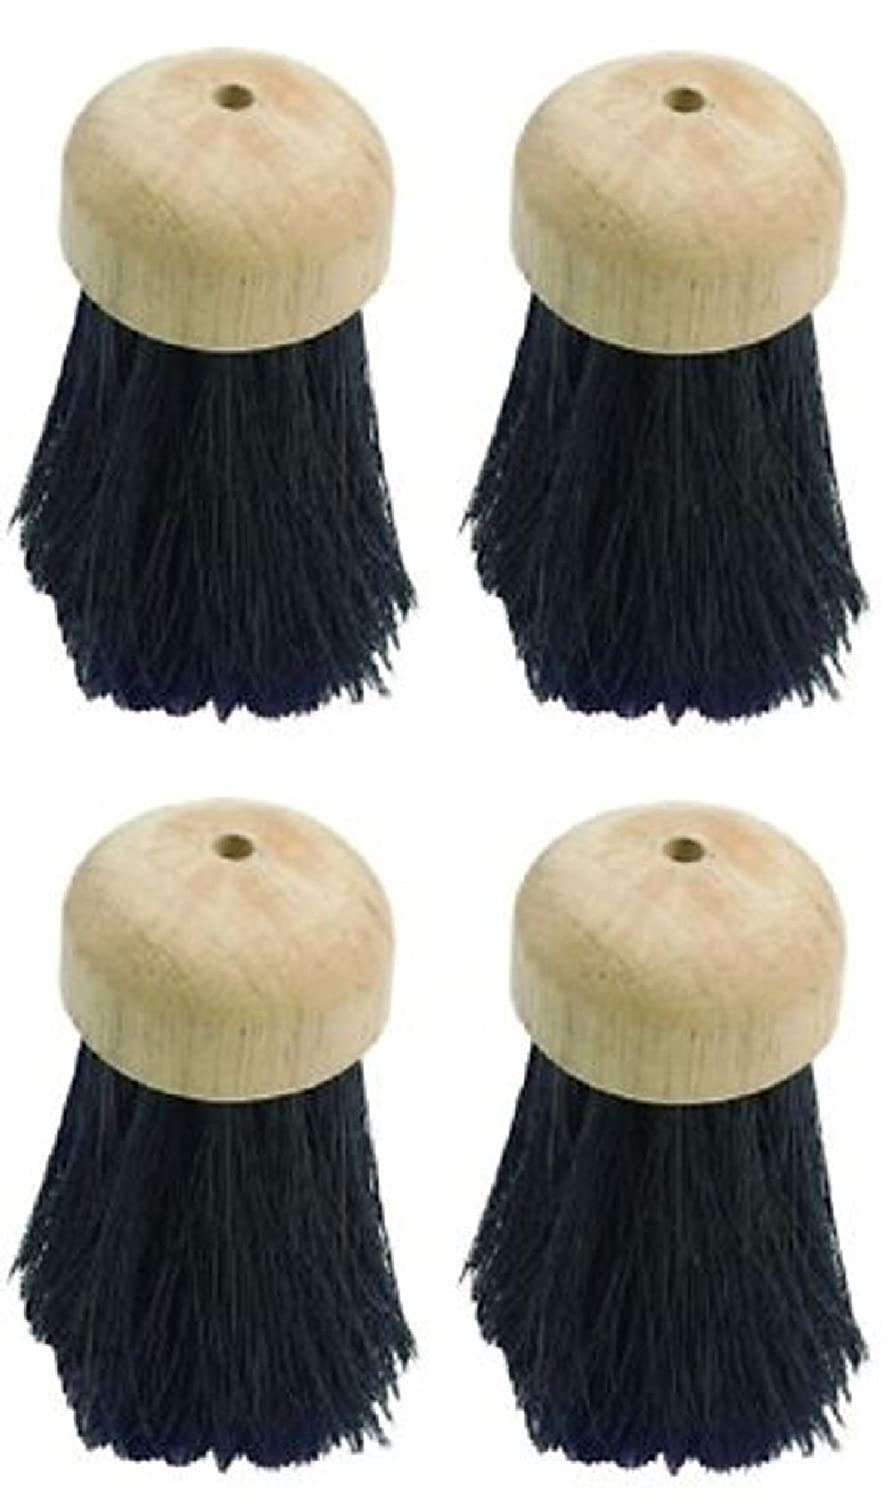 Likimen Home Pack Of 4 Round Wooden Traditional Hearth Brush Fireside Companion Replacement